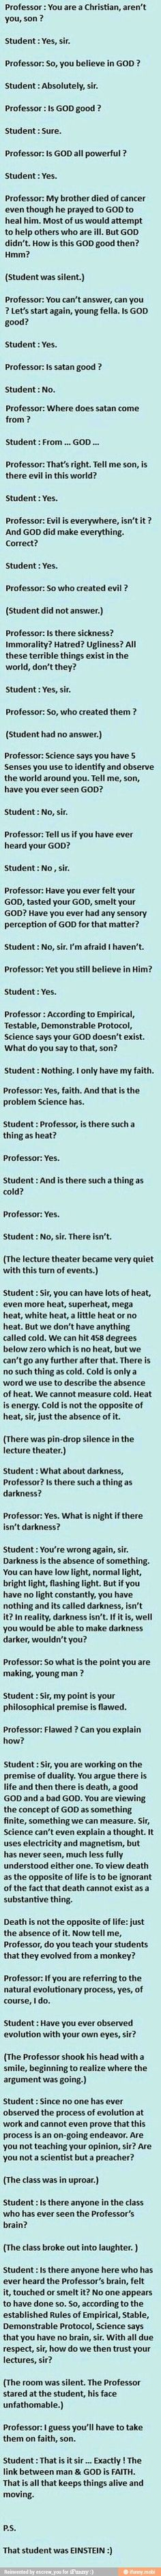 Einstein vs teacher